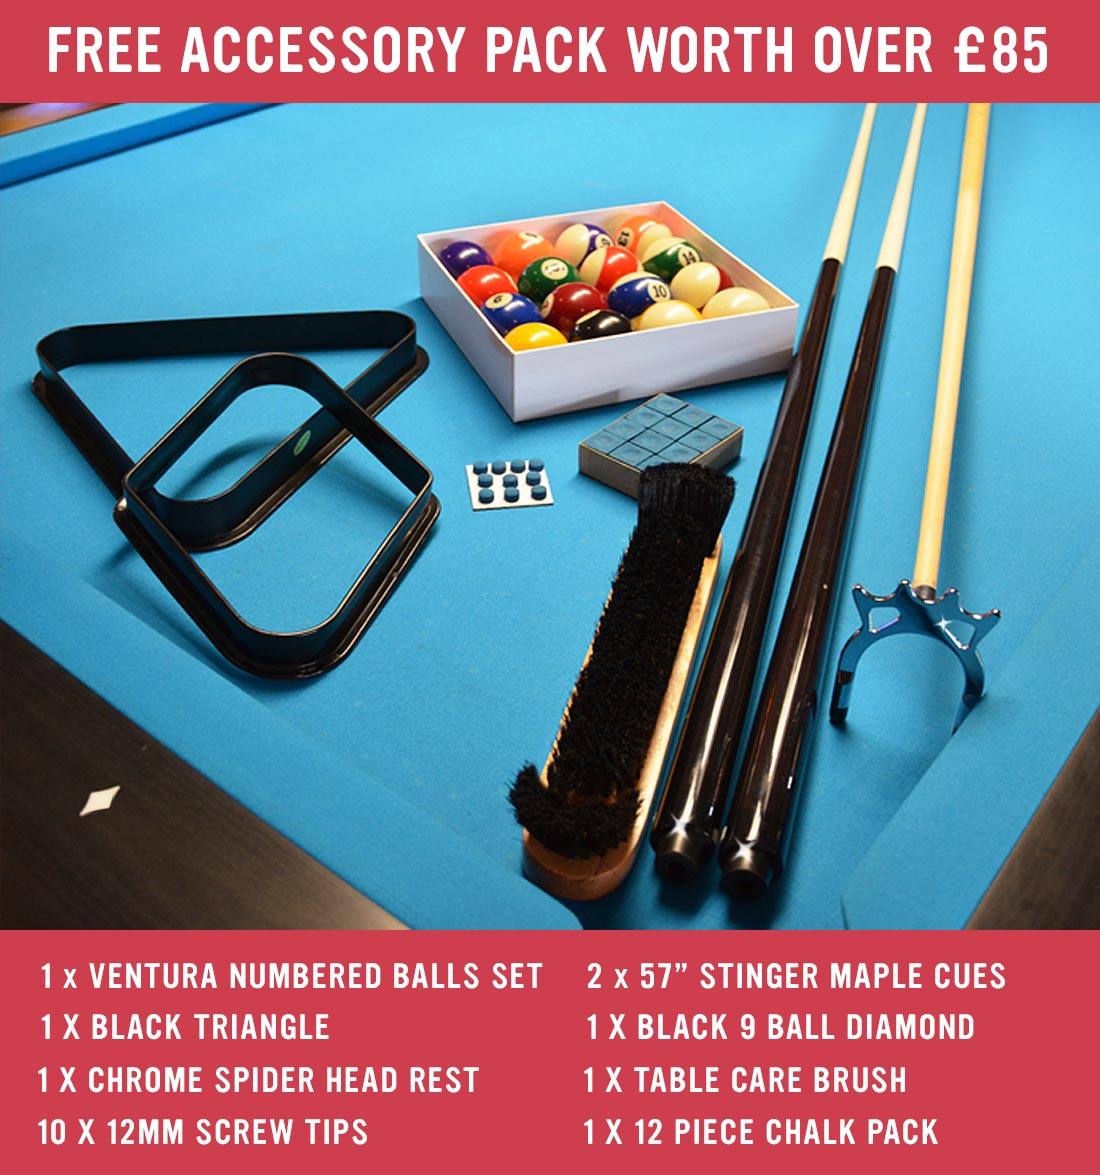 Buffalo Pool Table – Accessory Pack